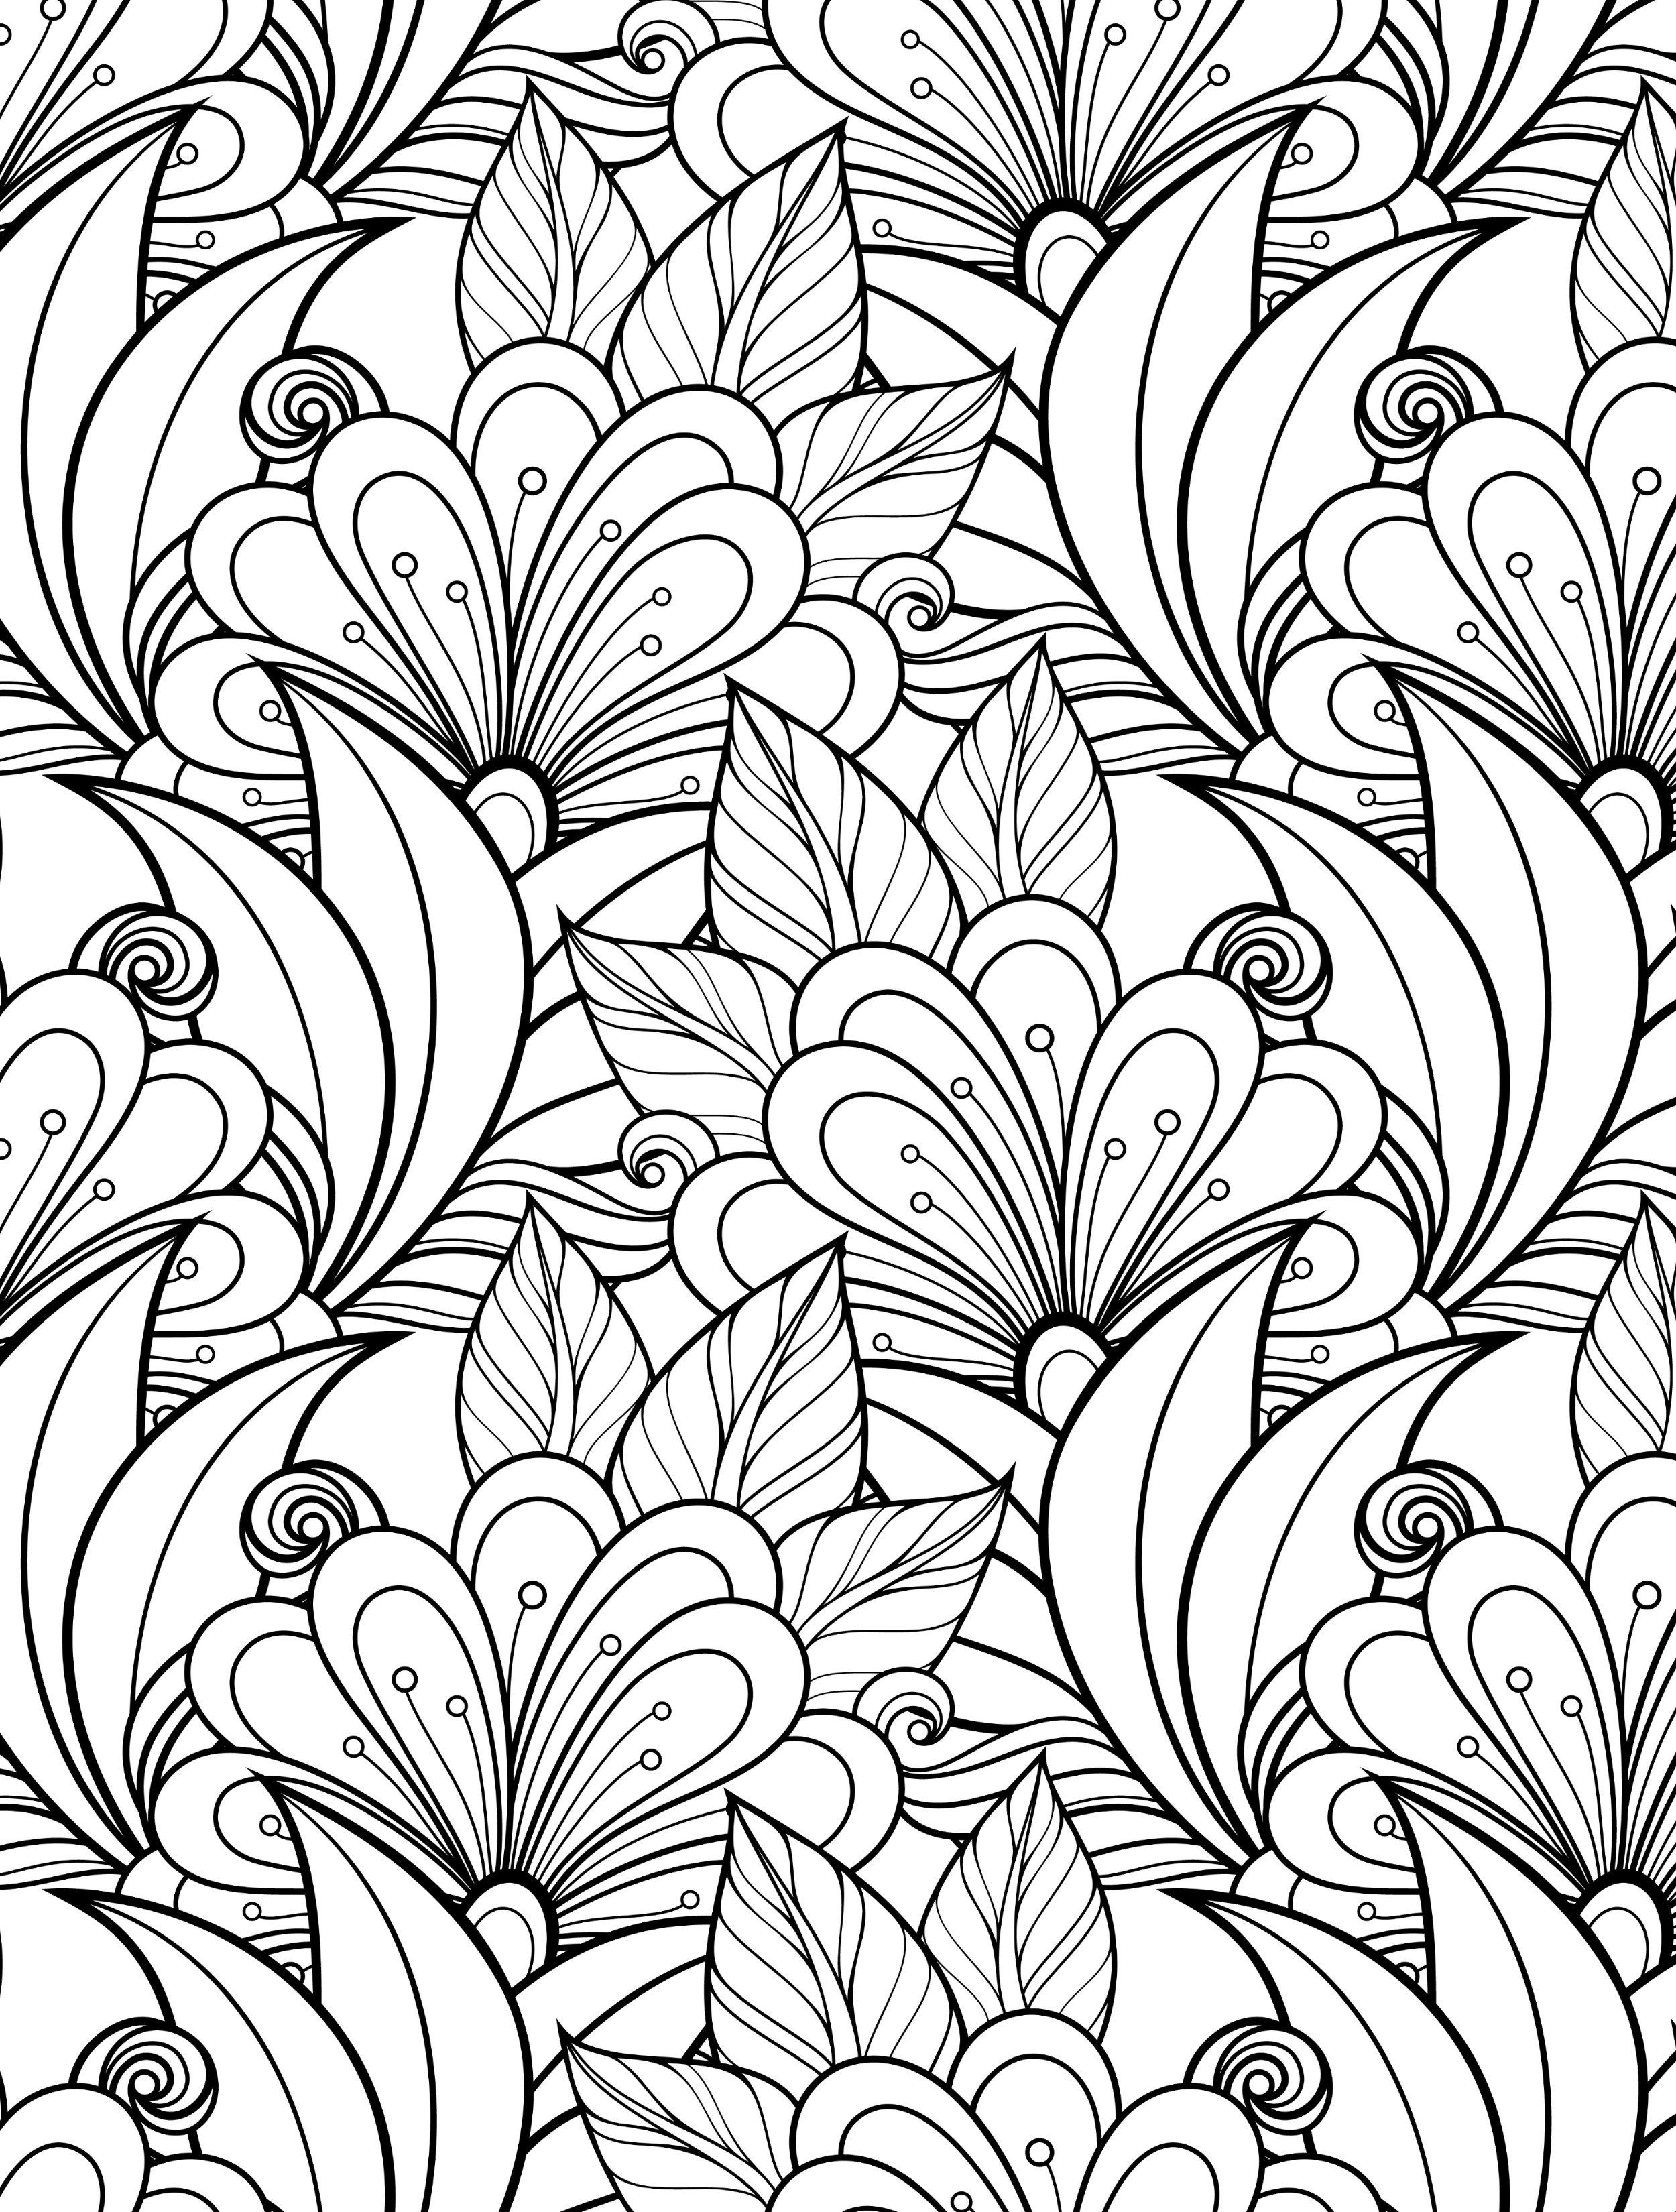 24 More Free Printable Coloring Pages